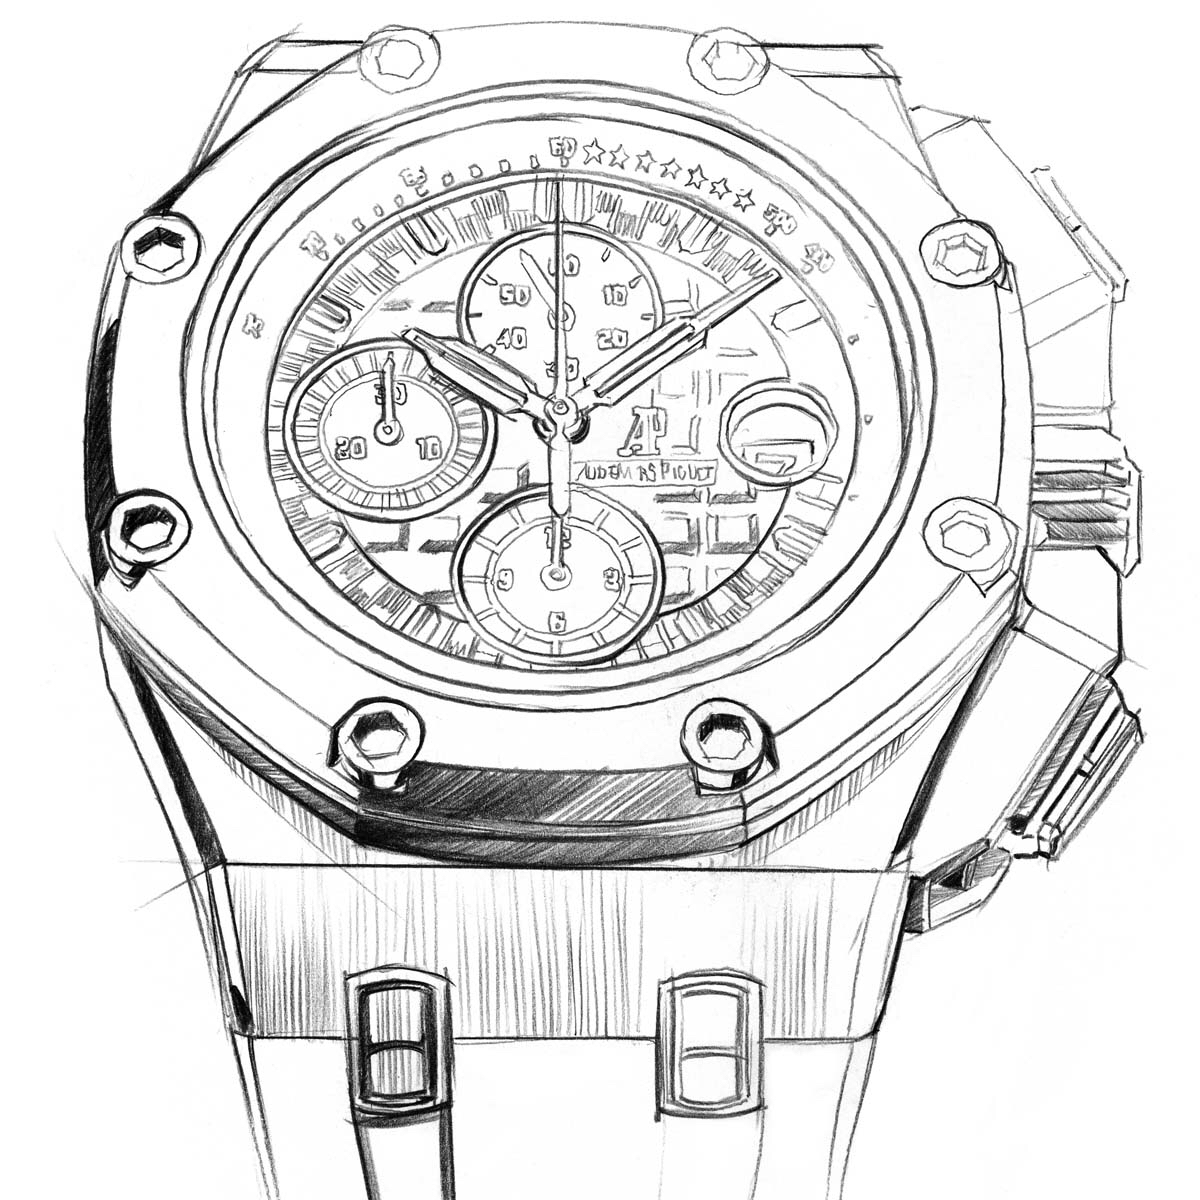 Drawn watch chronometer Offshore Oak Royal parts limited